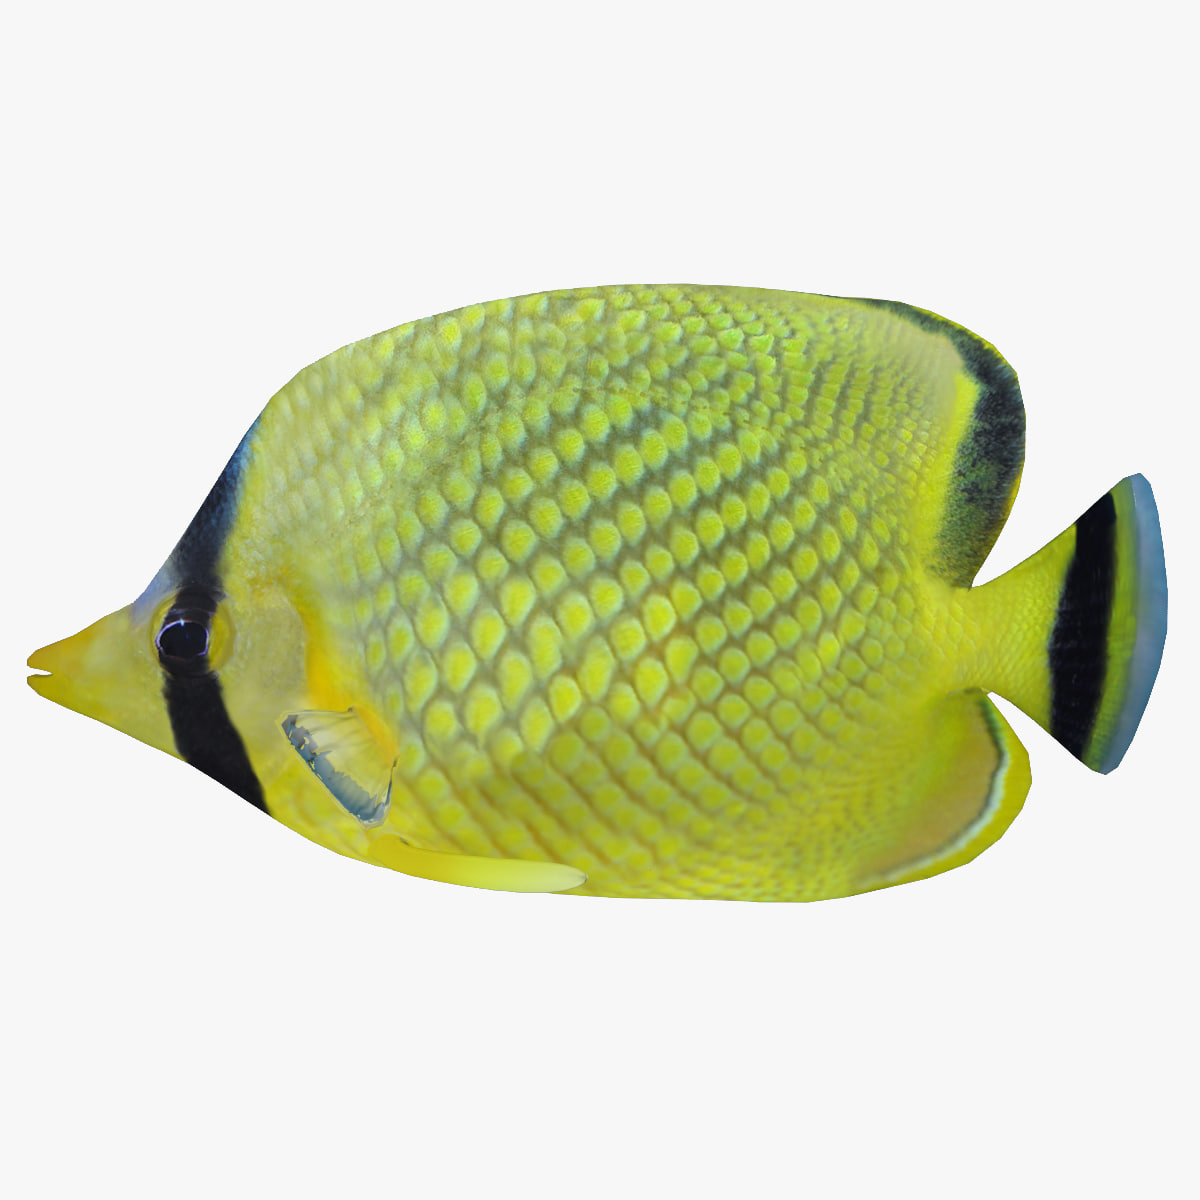 3d latticed butterfly fish model